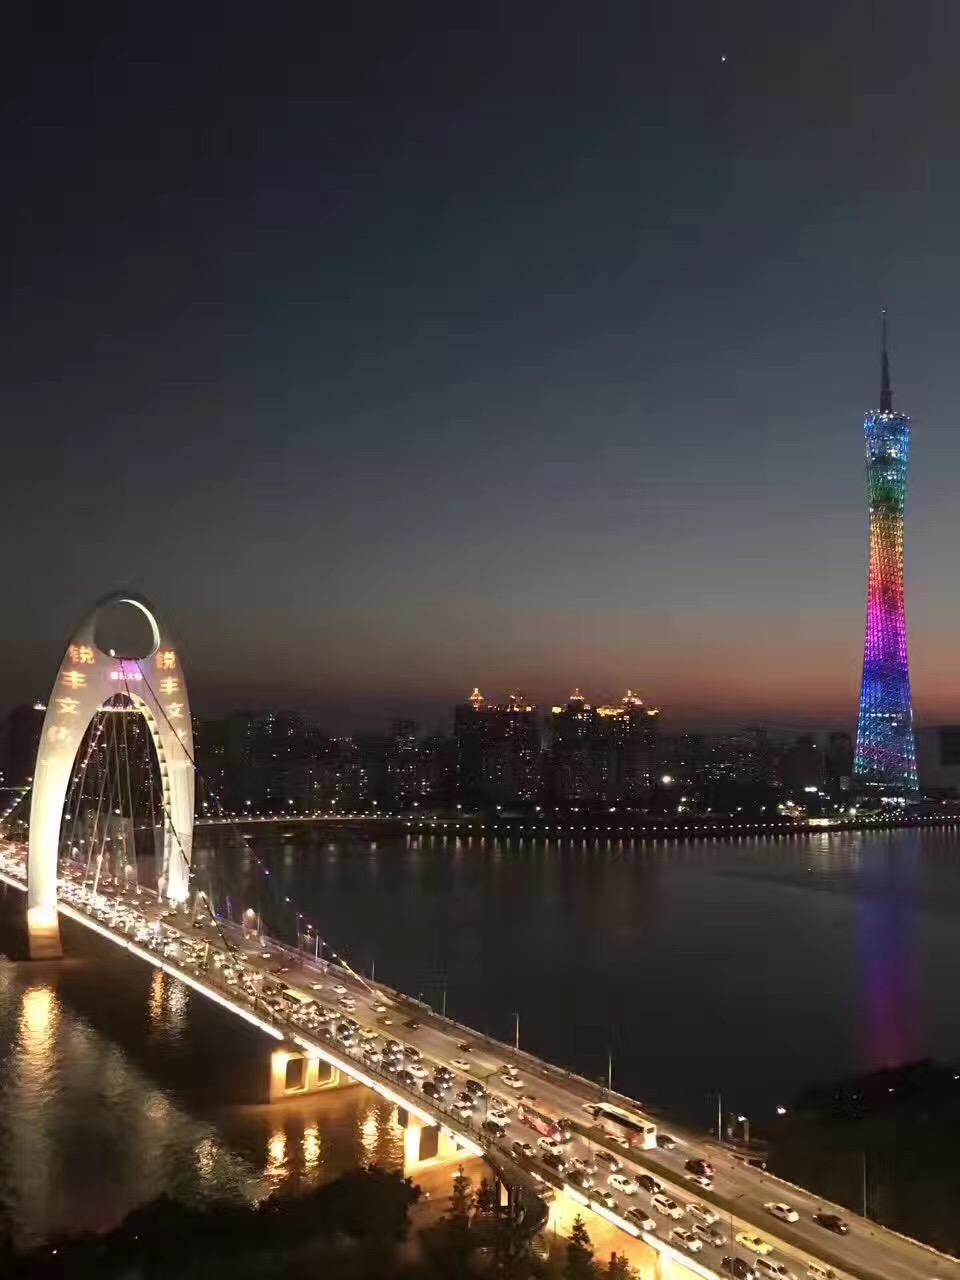 canton tower7.jpg